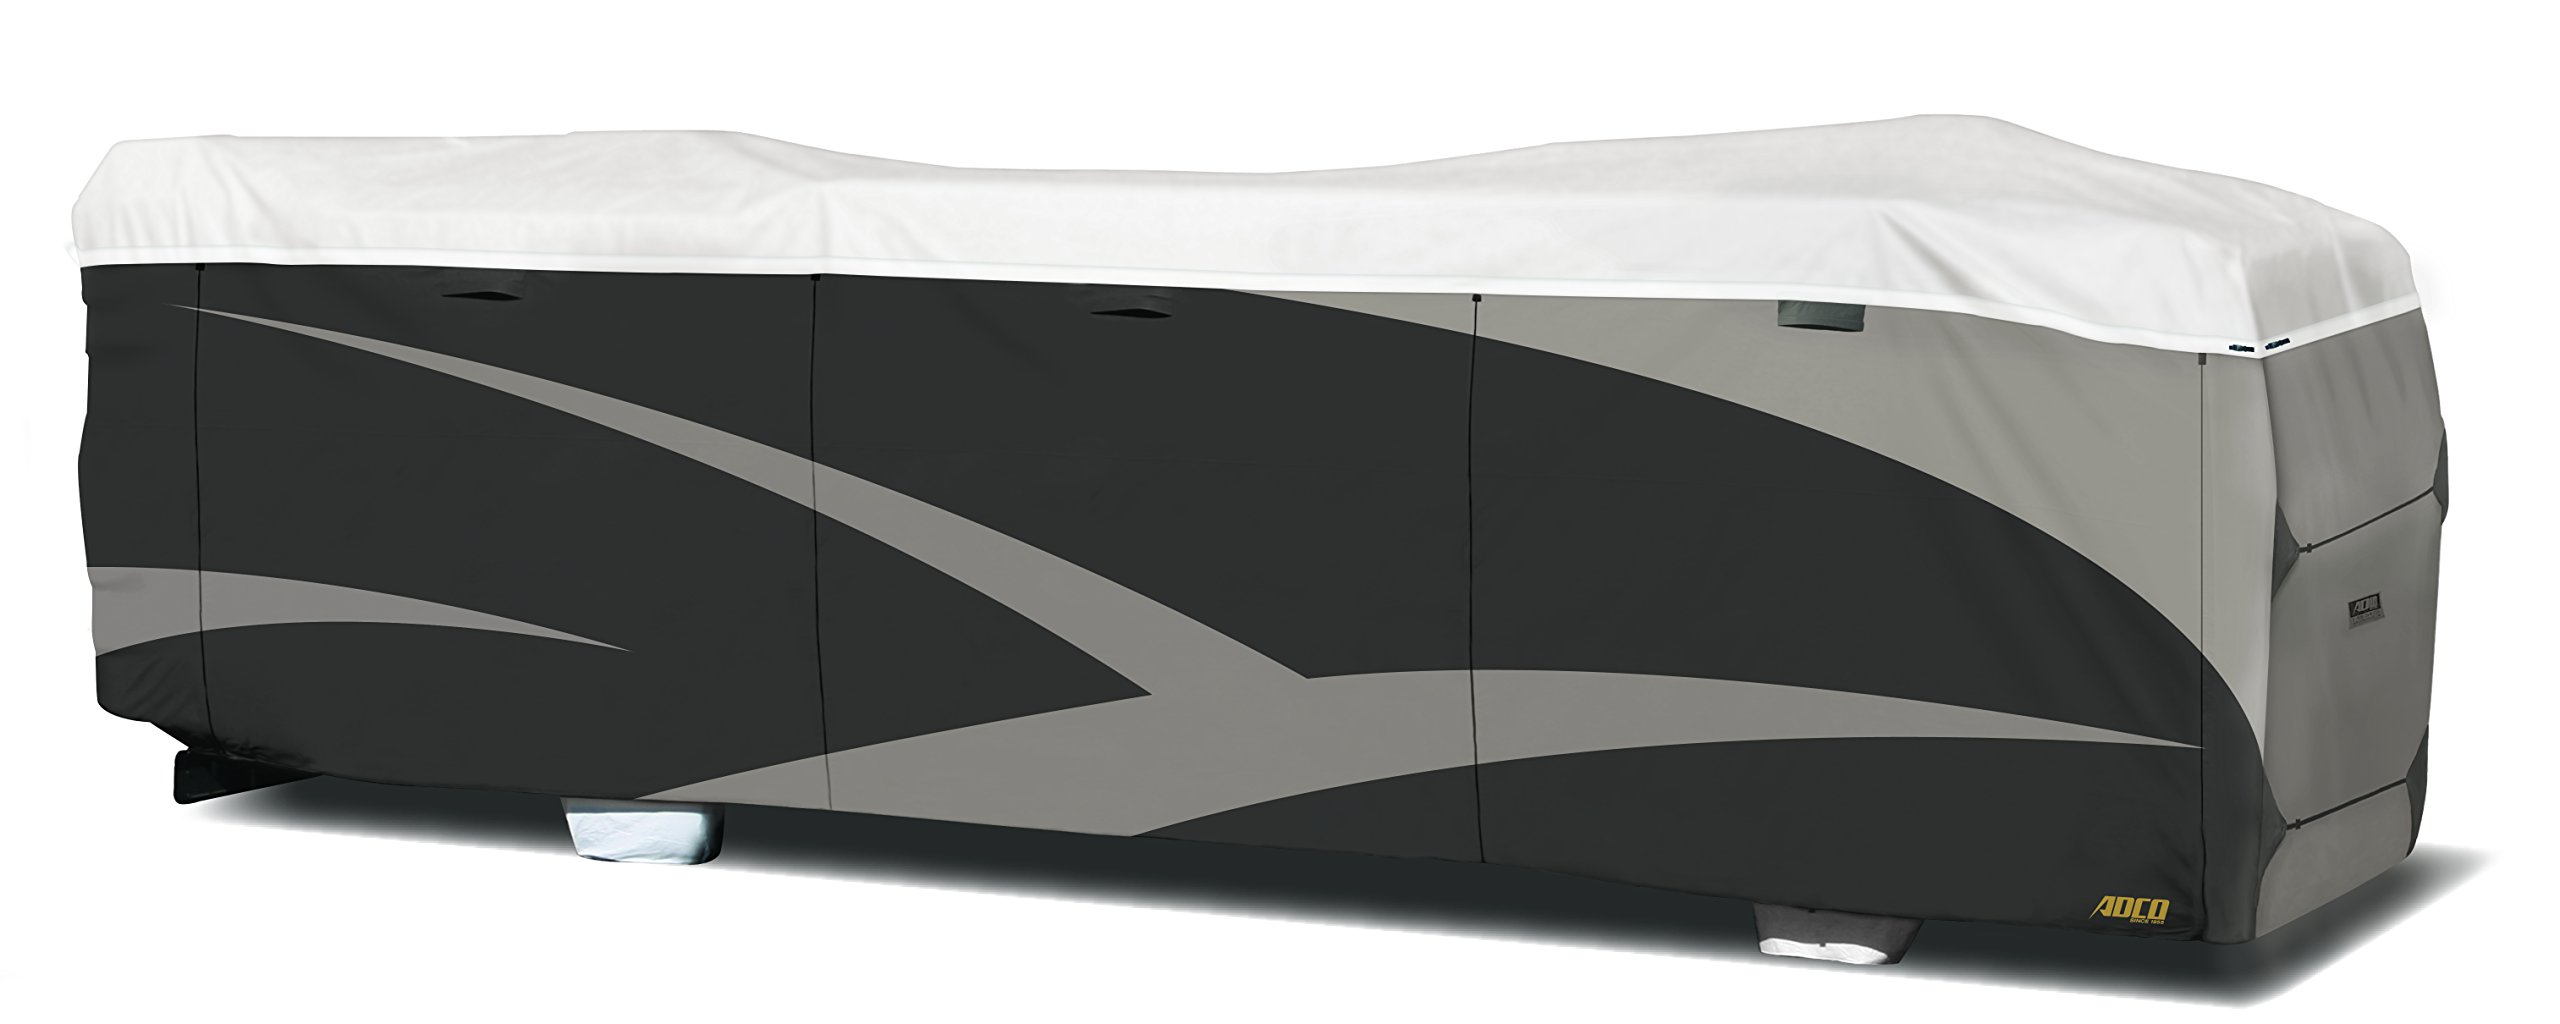 ADCO 34824 Designer Series Gray/White 28' 1'' - 31' DuPont Tyvek Class A Motorhome Cover by ADCO